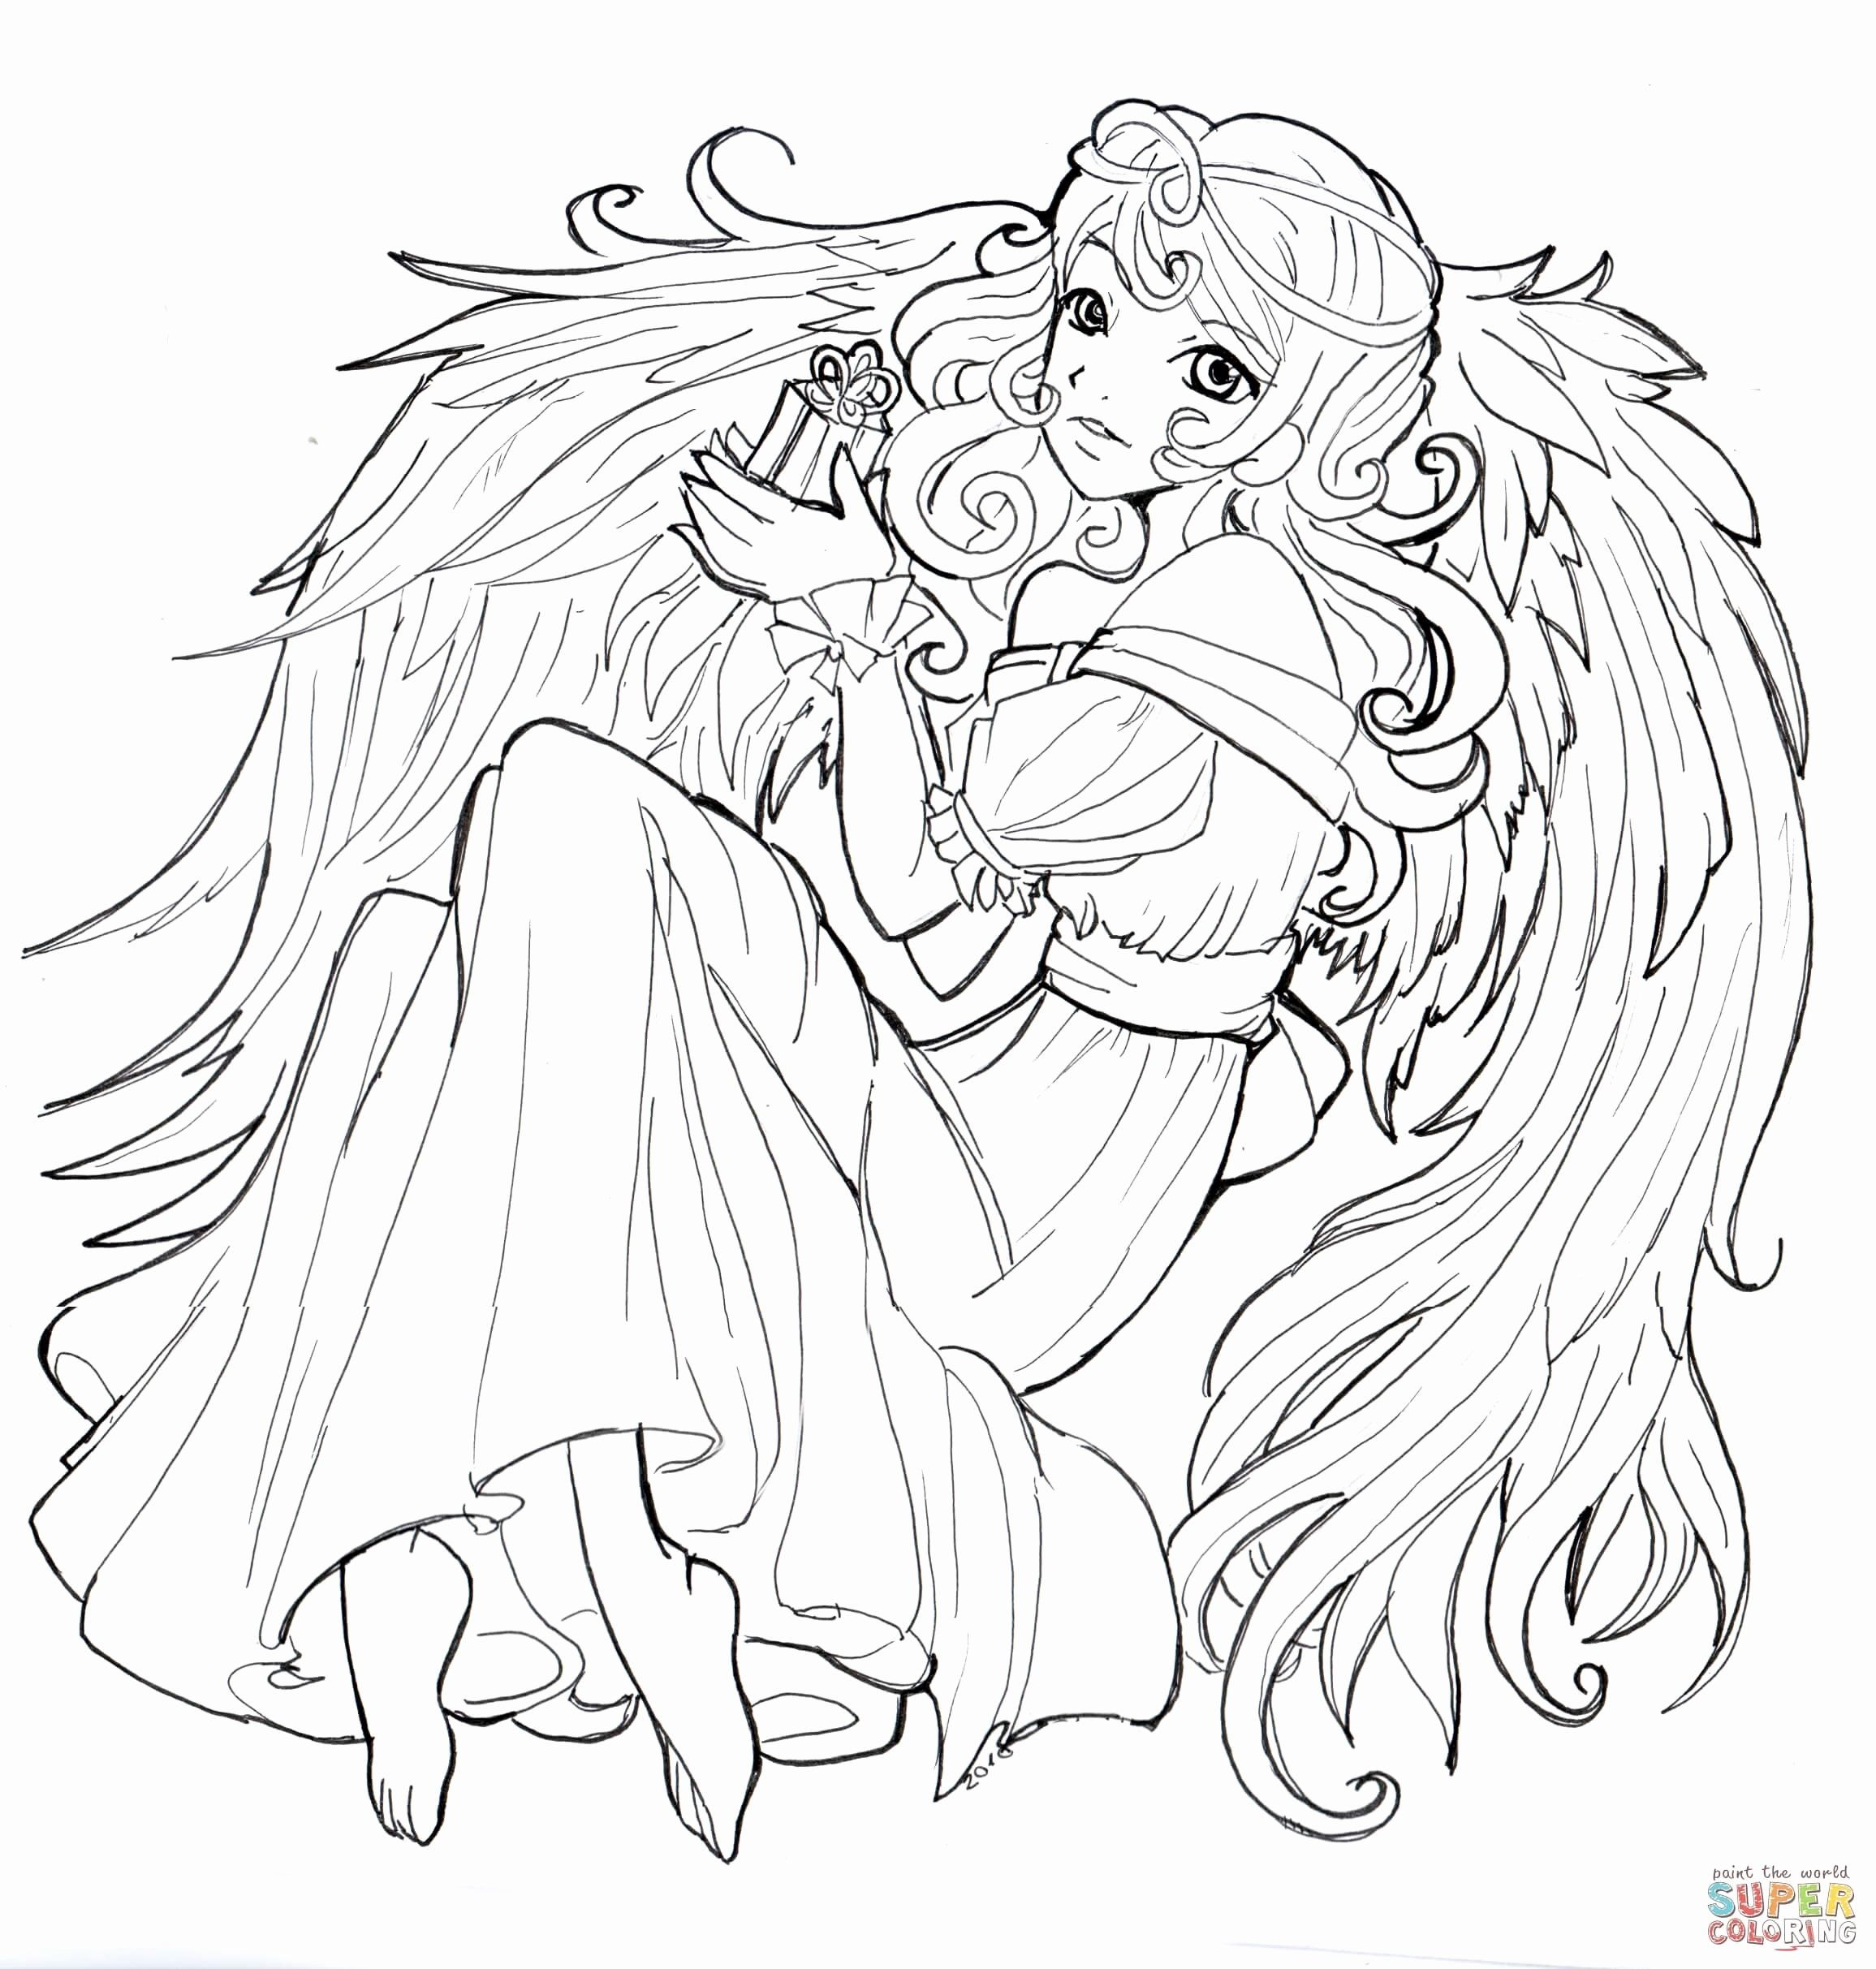 Anime Christmas Coloring Pages Awesome Merry Christmas and Happy